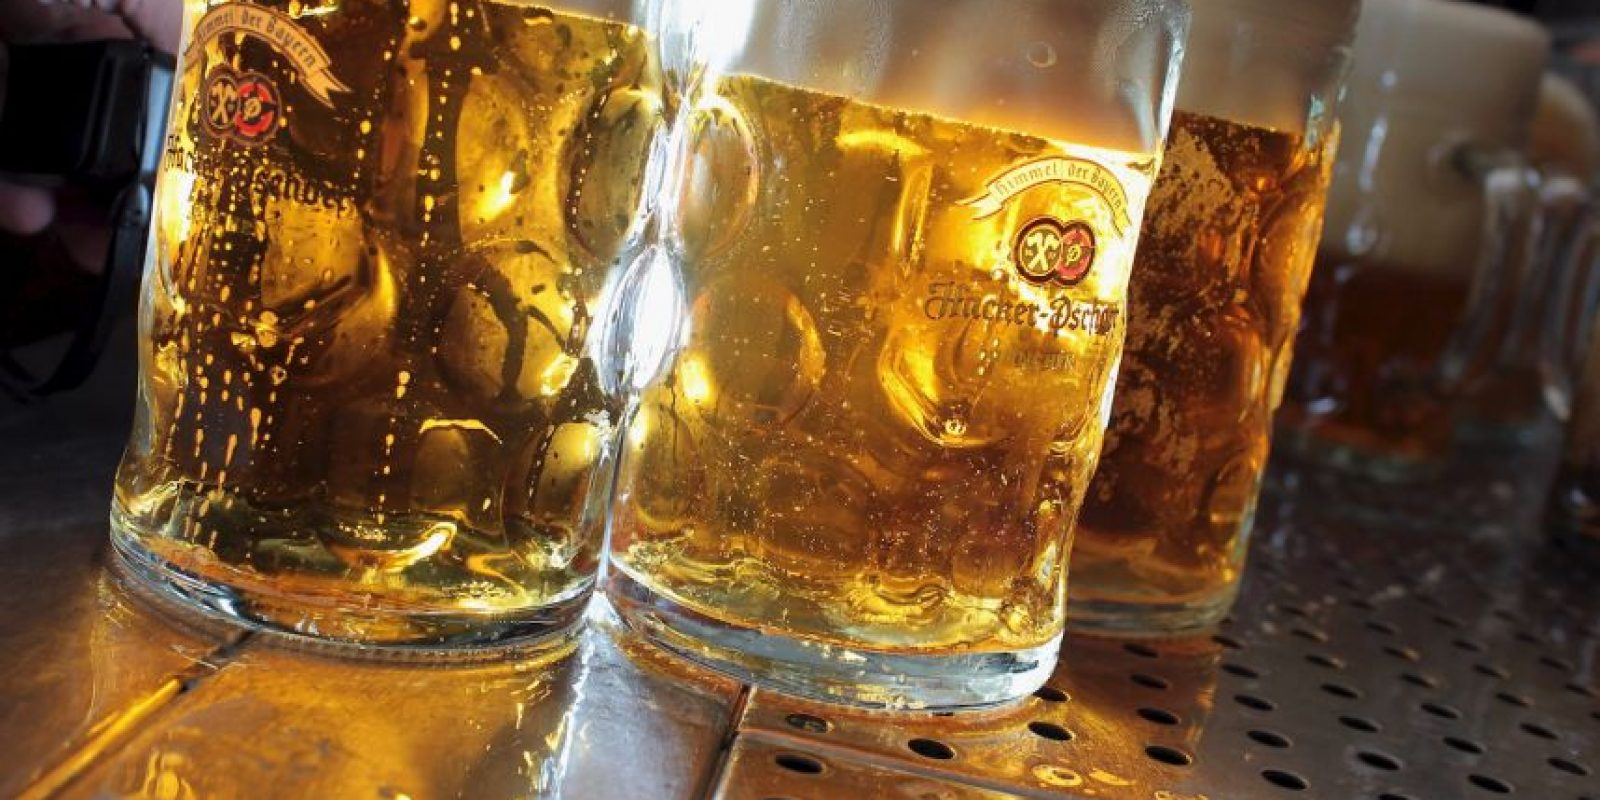 5. Bebidas alcoholicas. Foto: Getty Images